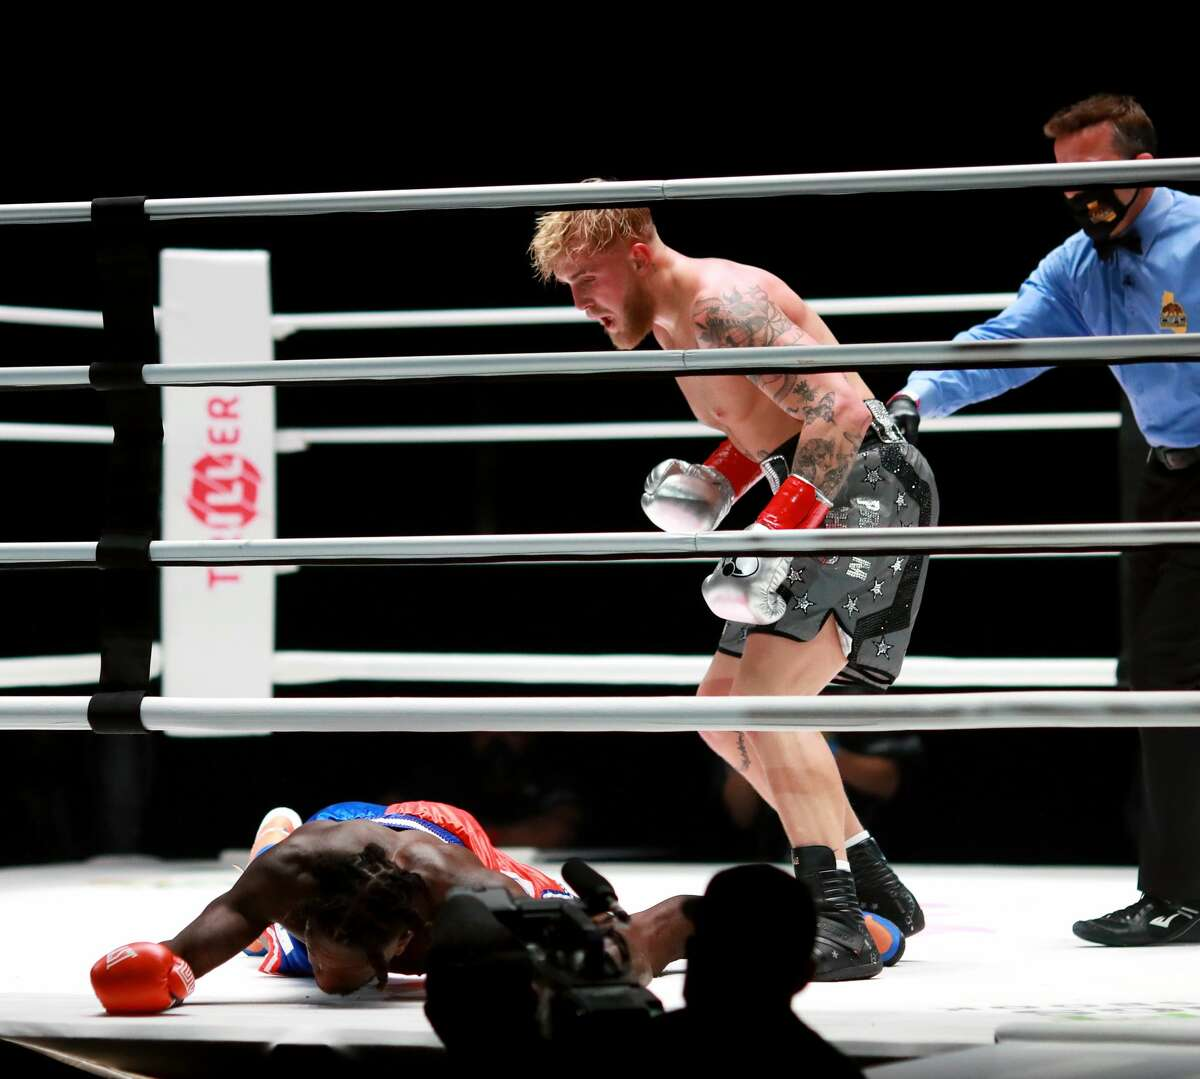 Jake Paul reacts over his knockout victory against Nate Robinson in the second round during Mike Tyson vs Roy Jones Jr. presented by Triller at Staples Center on November 28, 2020 in Los Angeles.